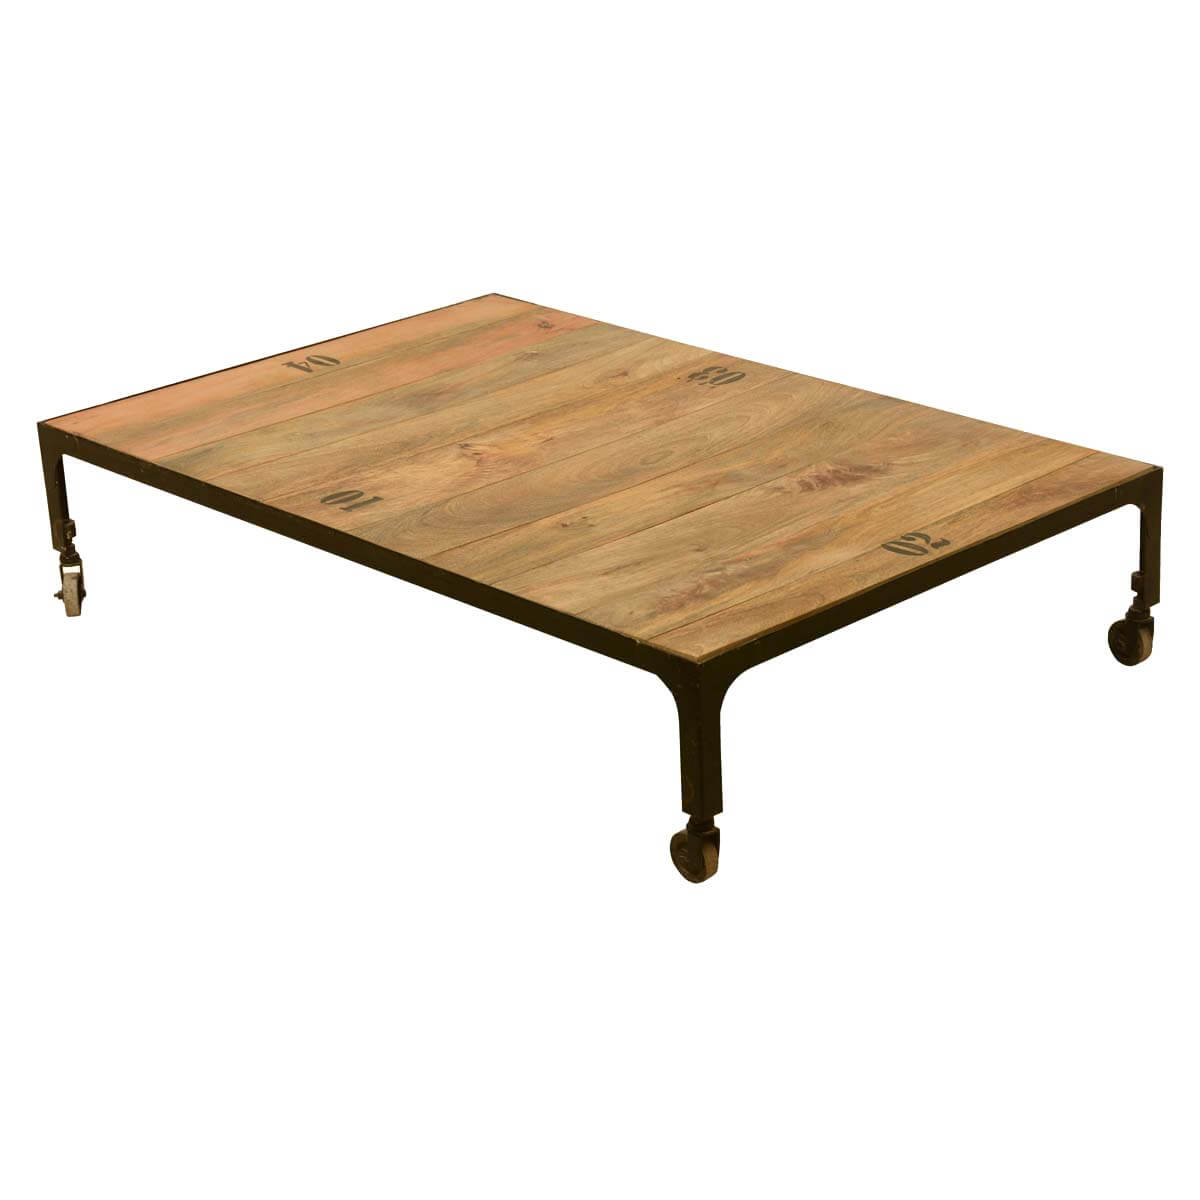 Industrial fusion solid wood iron rustic rolling cart coffee table Rustic iron coffee table